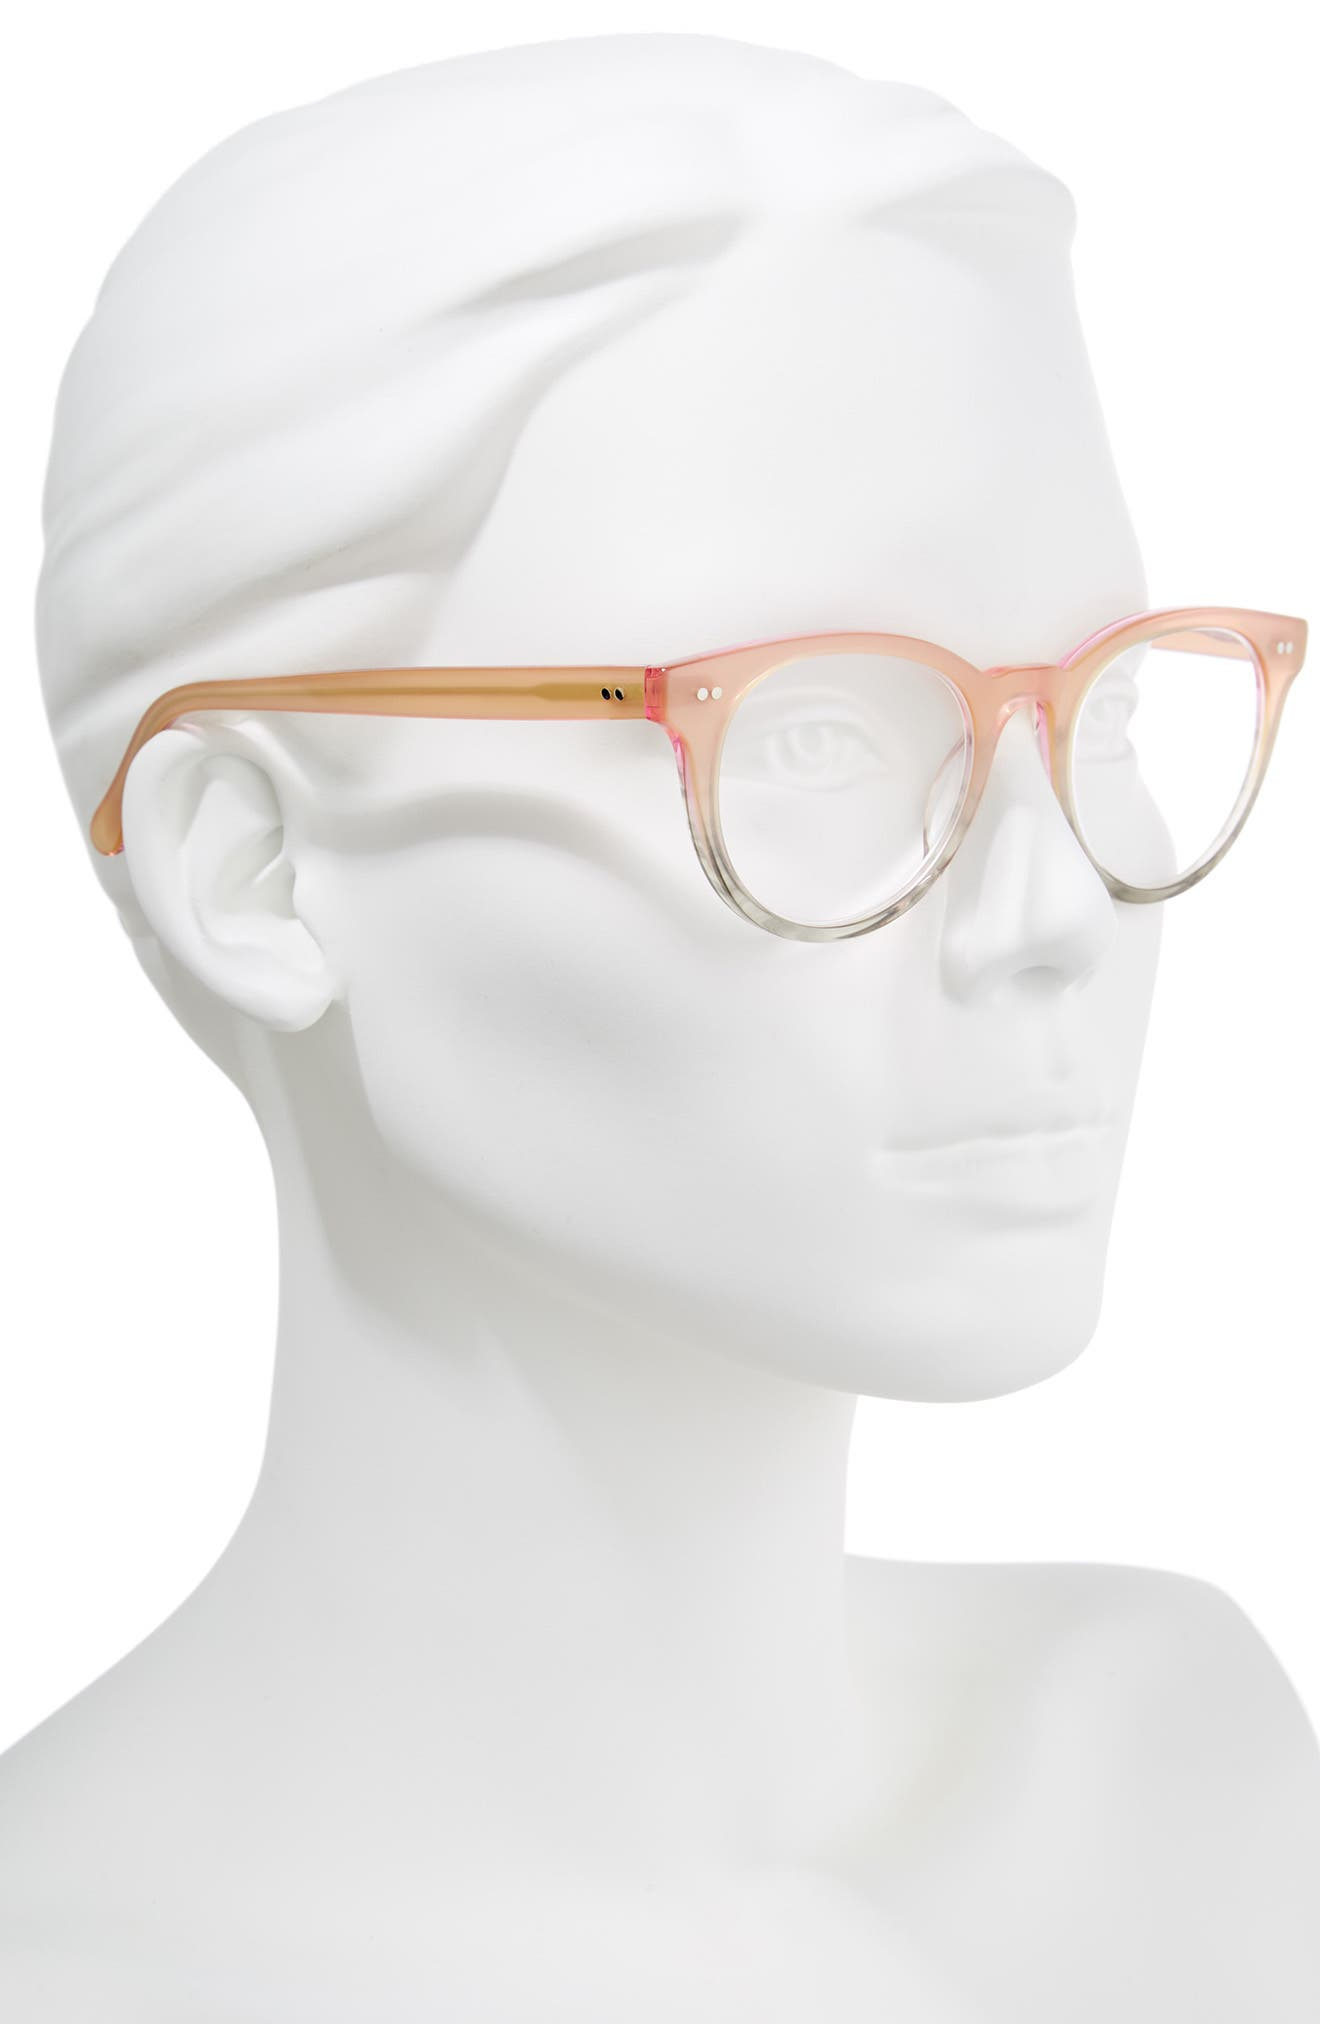 Abby 50mm Reading Glasses,                             Alternate thumbnail 2, color,                             Pink/ Grey